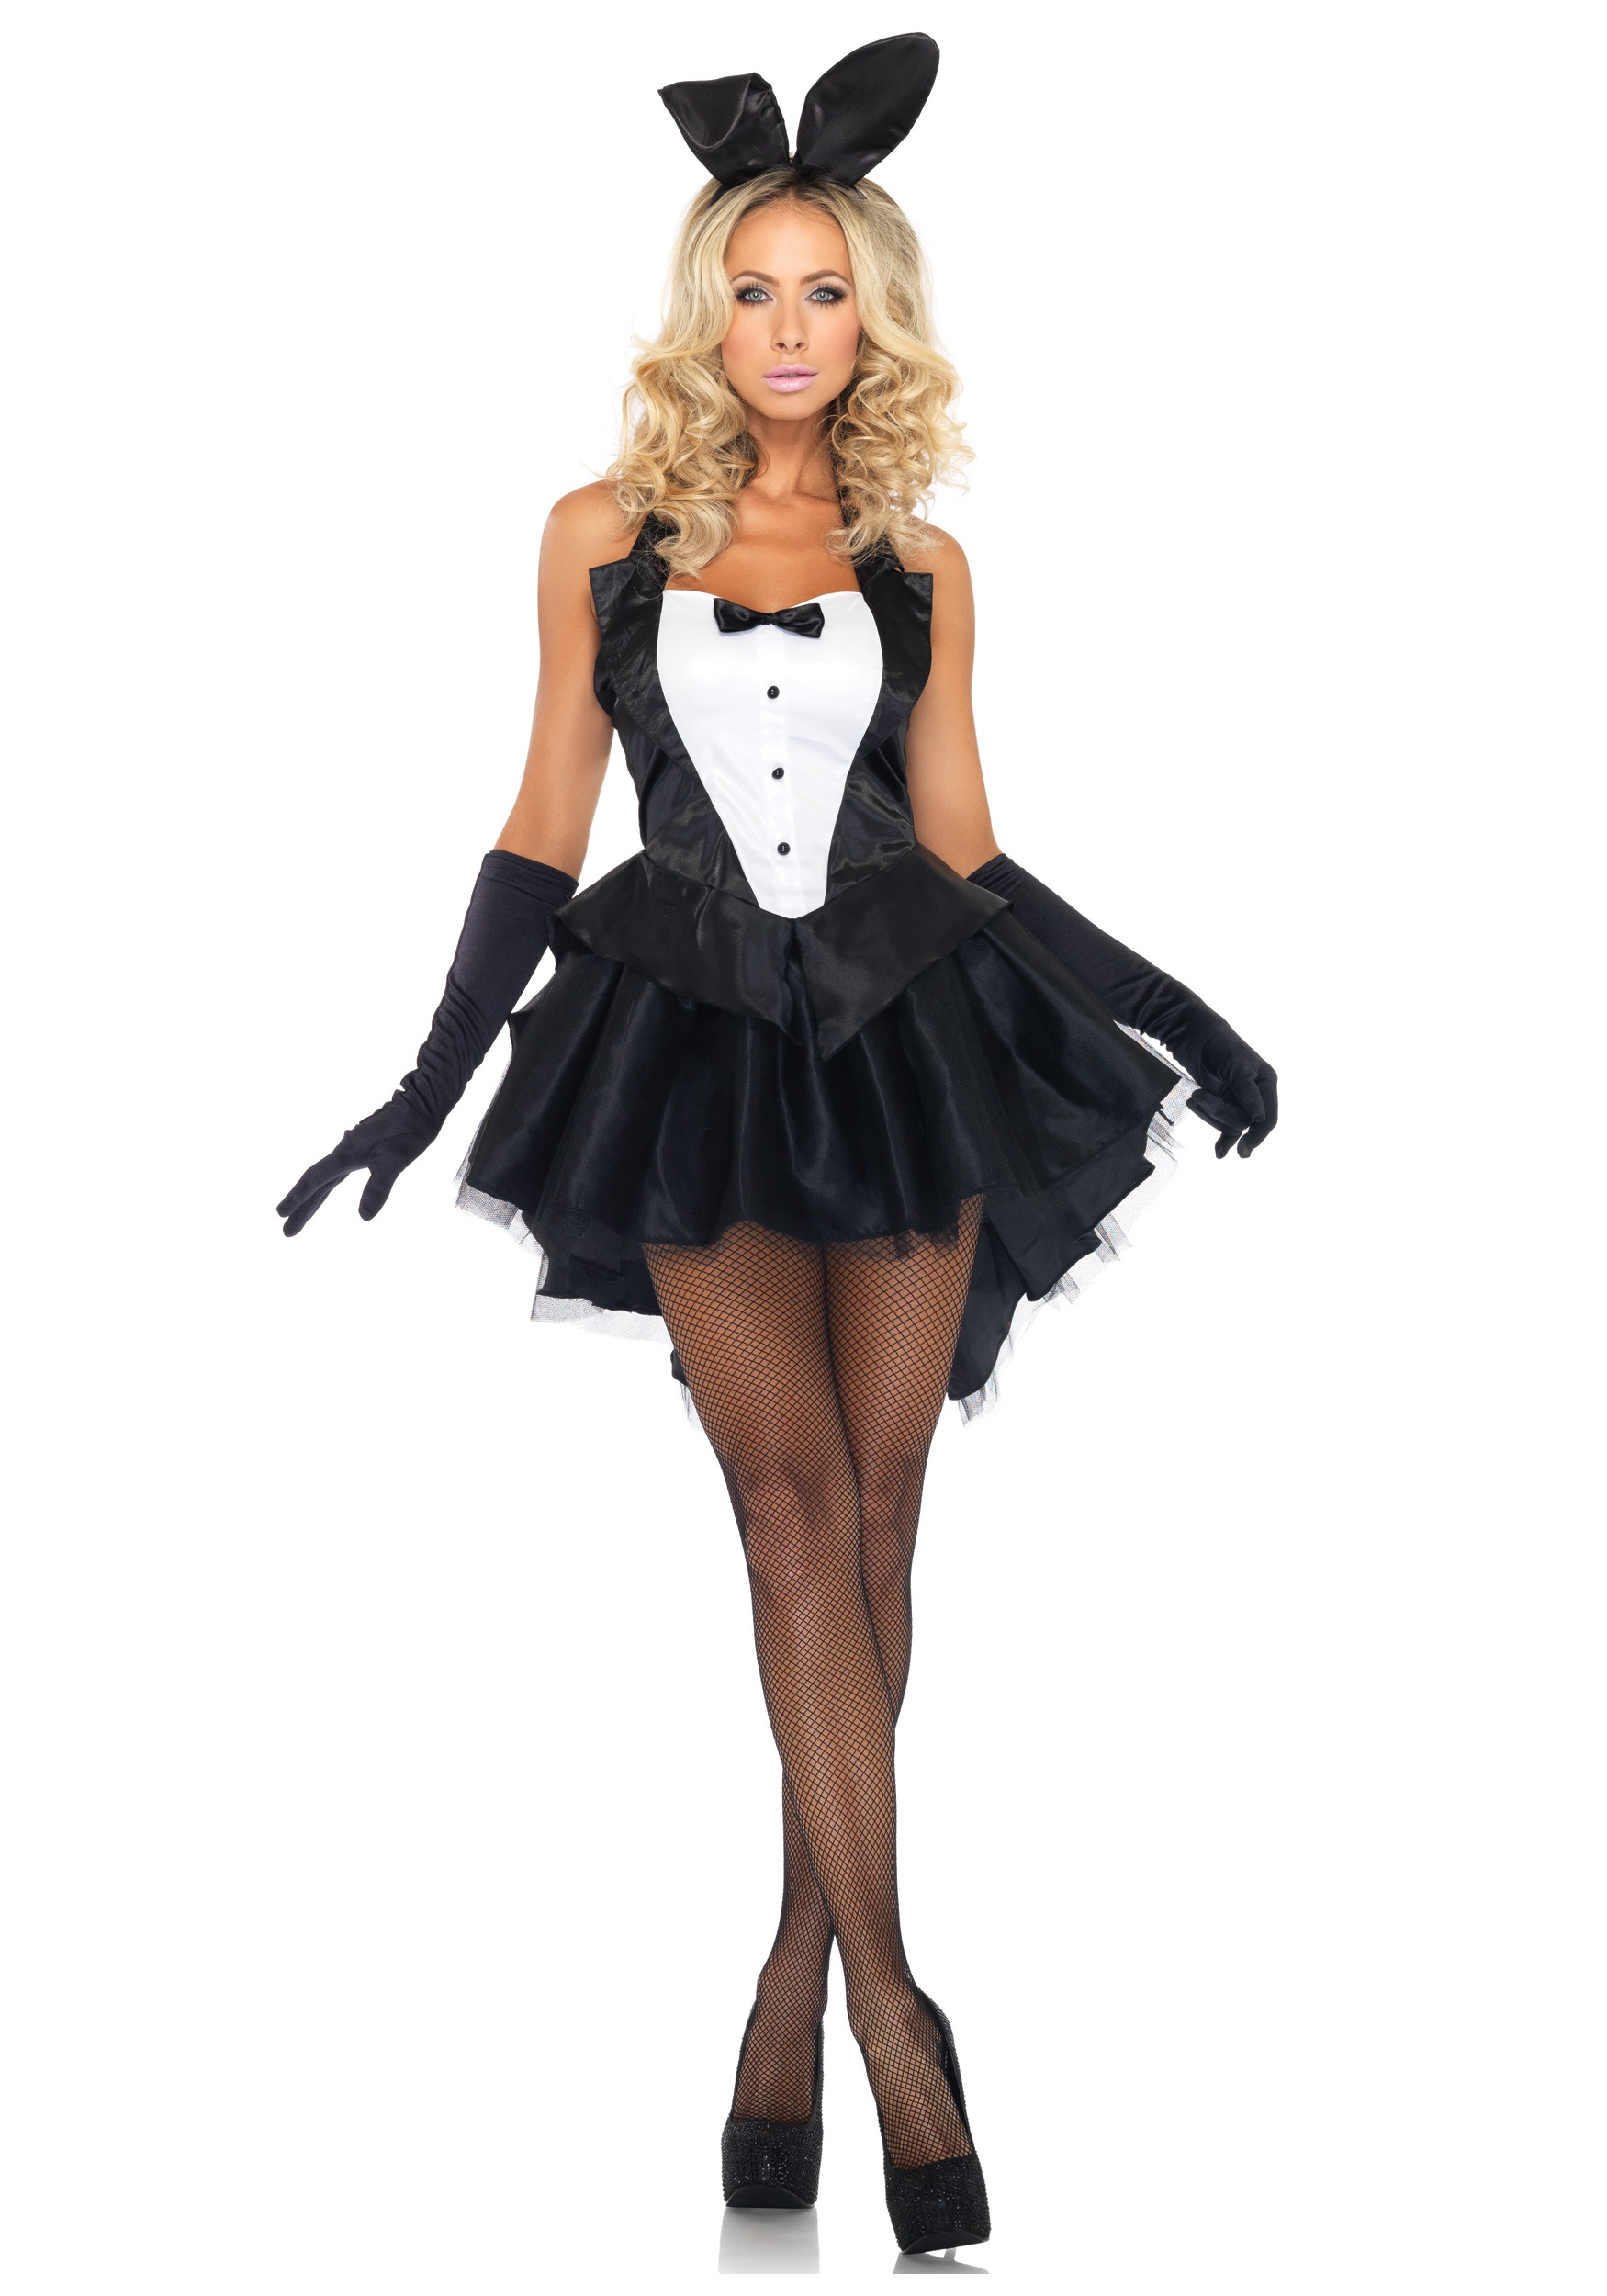 sc 1 st  Halloween Costumes & Tux and Tails Bunny Costume